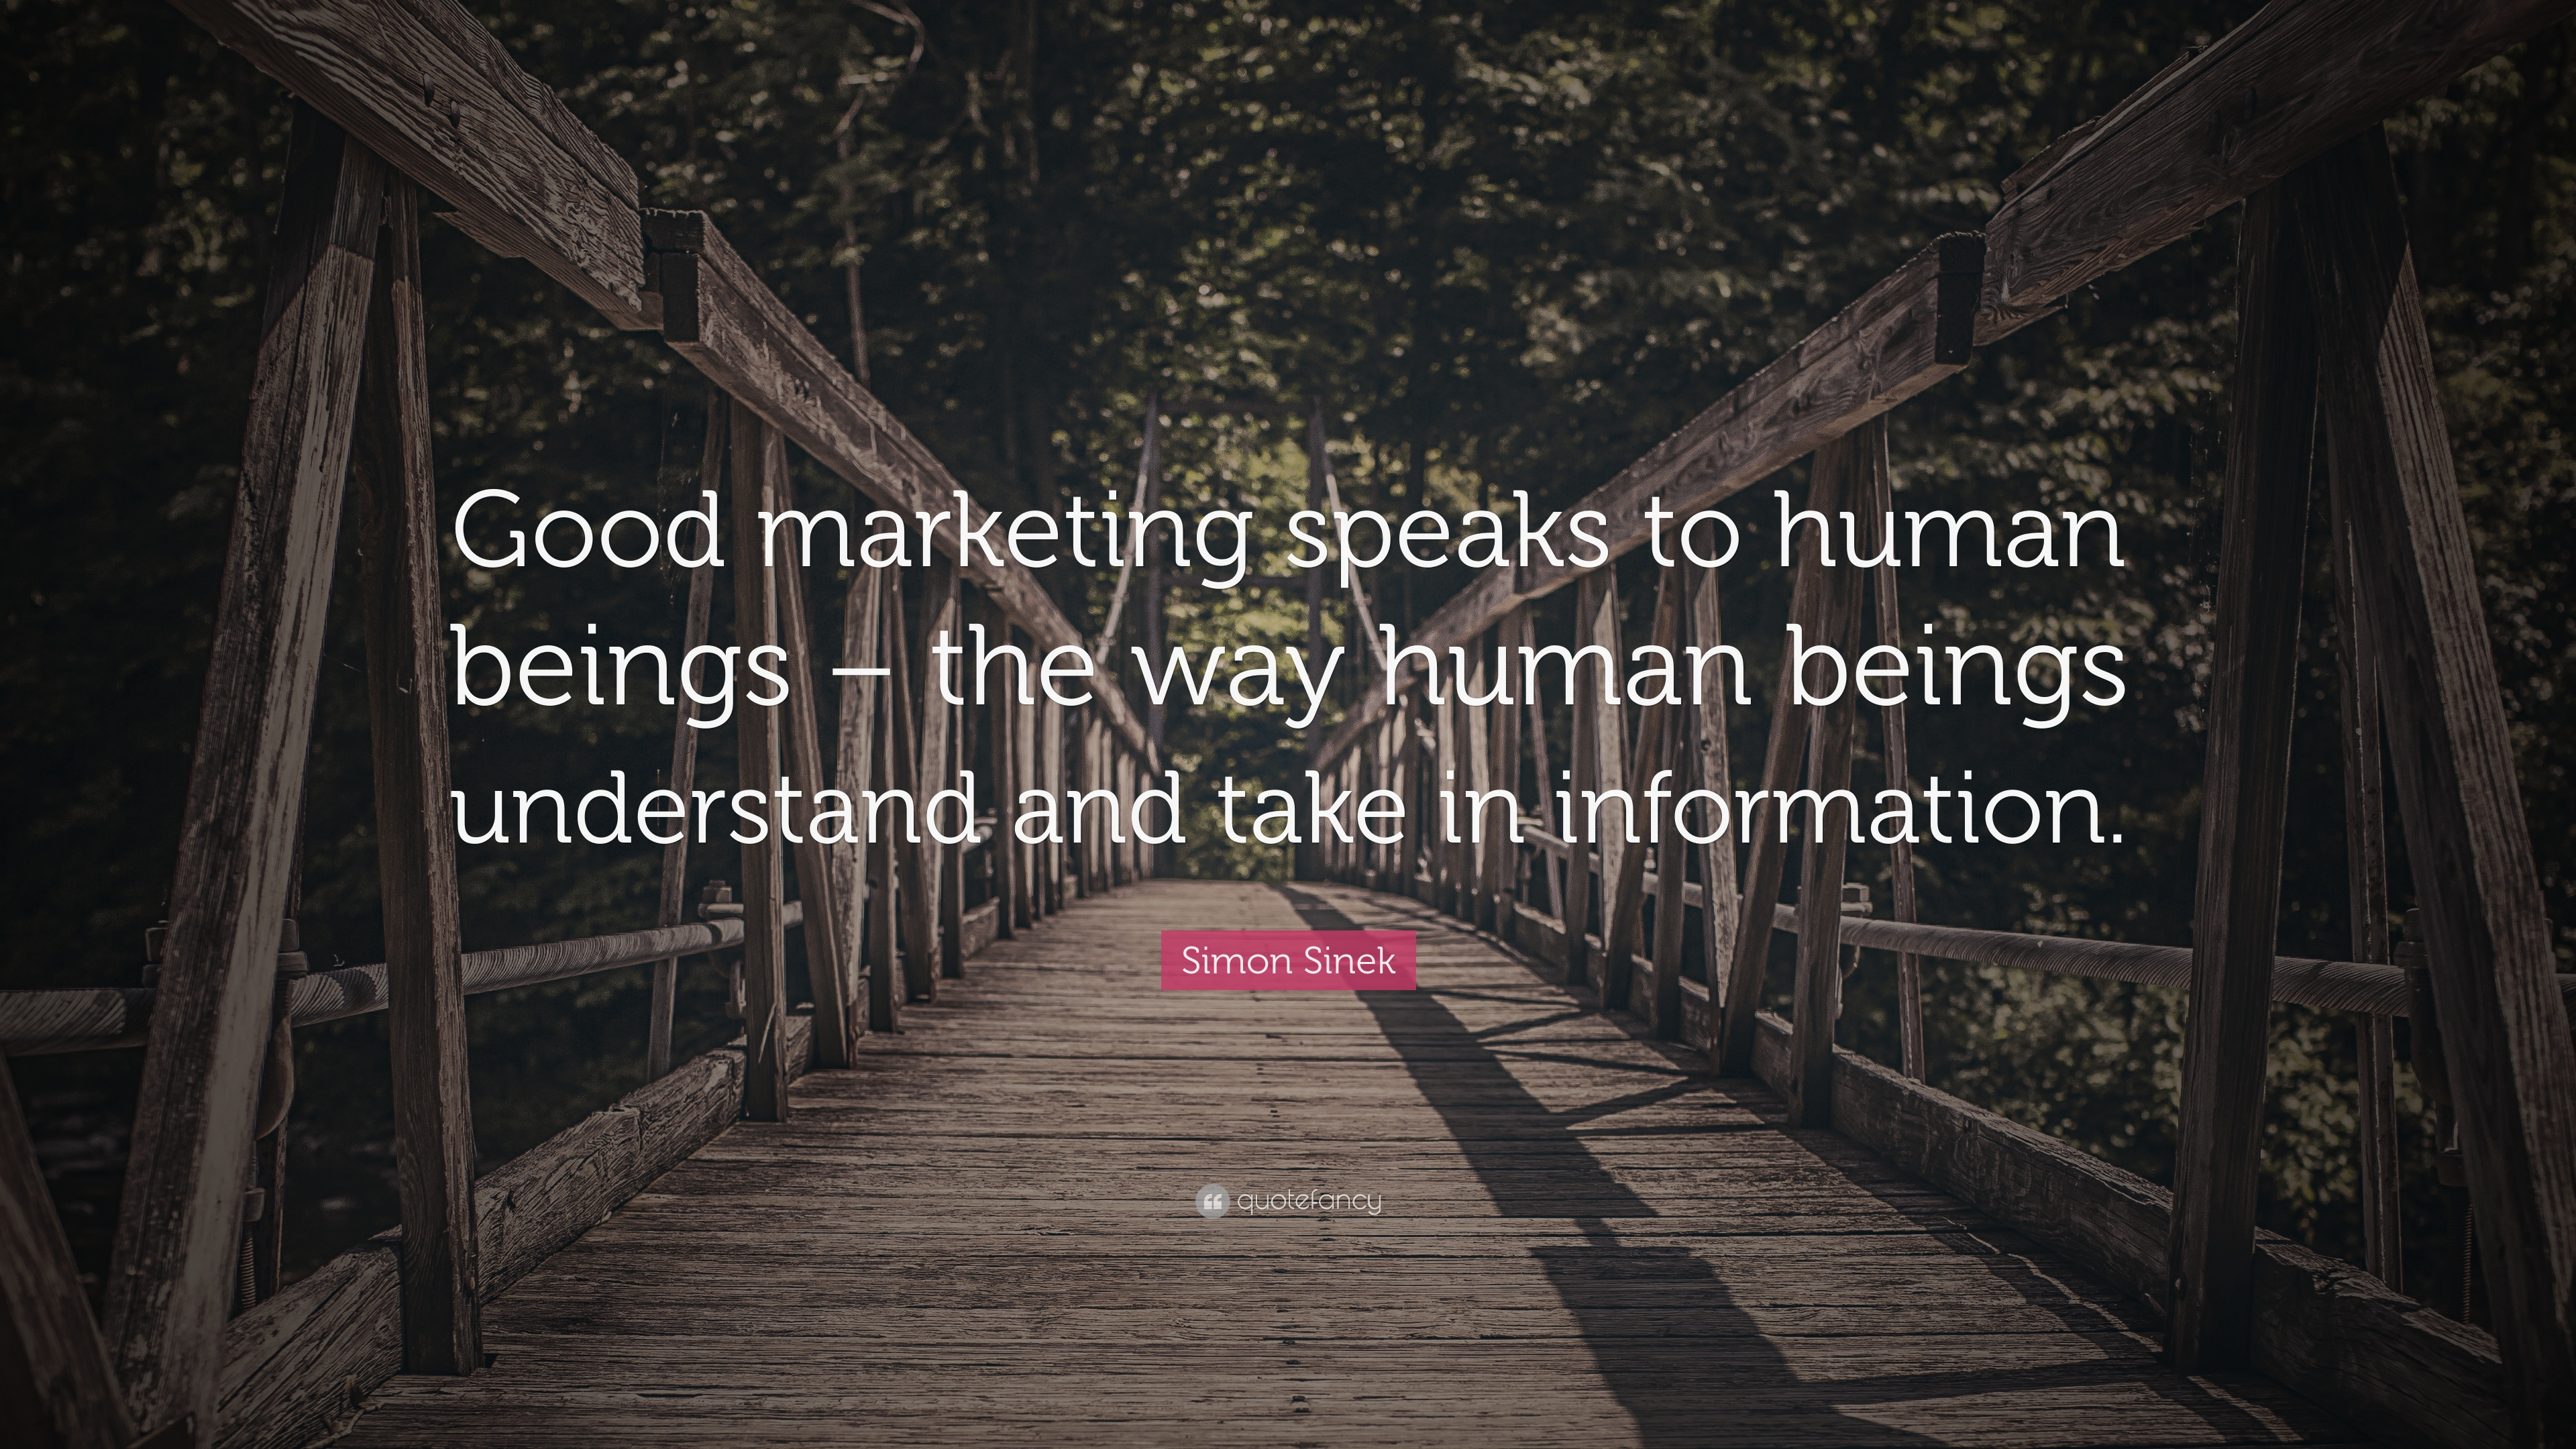 Simon Sinek Quote Good Marketing Speaks To Human Beings The Way